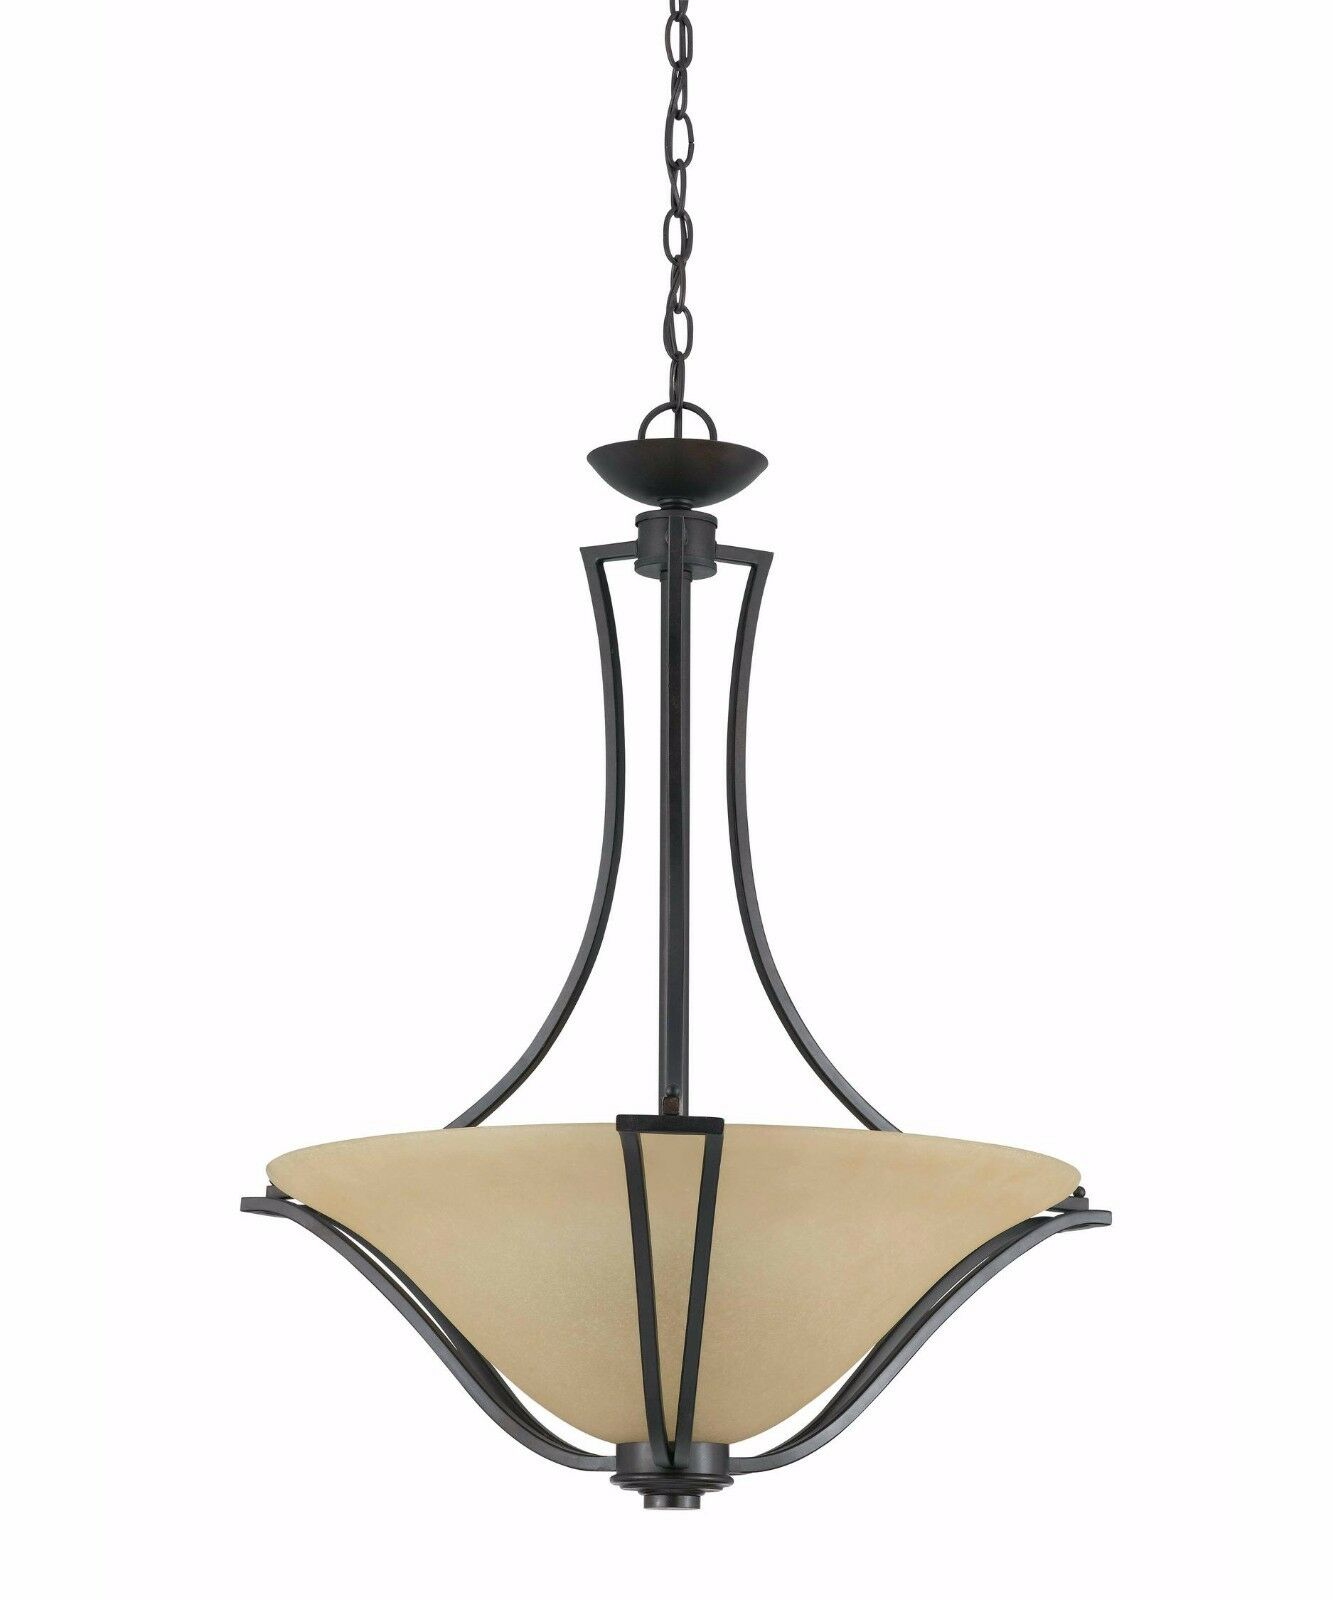 NEW TRIARCH 32782-24 GRECO 3-LIGHT LARGE PENDANT CHANDELIER 24  W 28  H